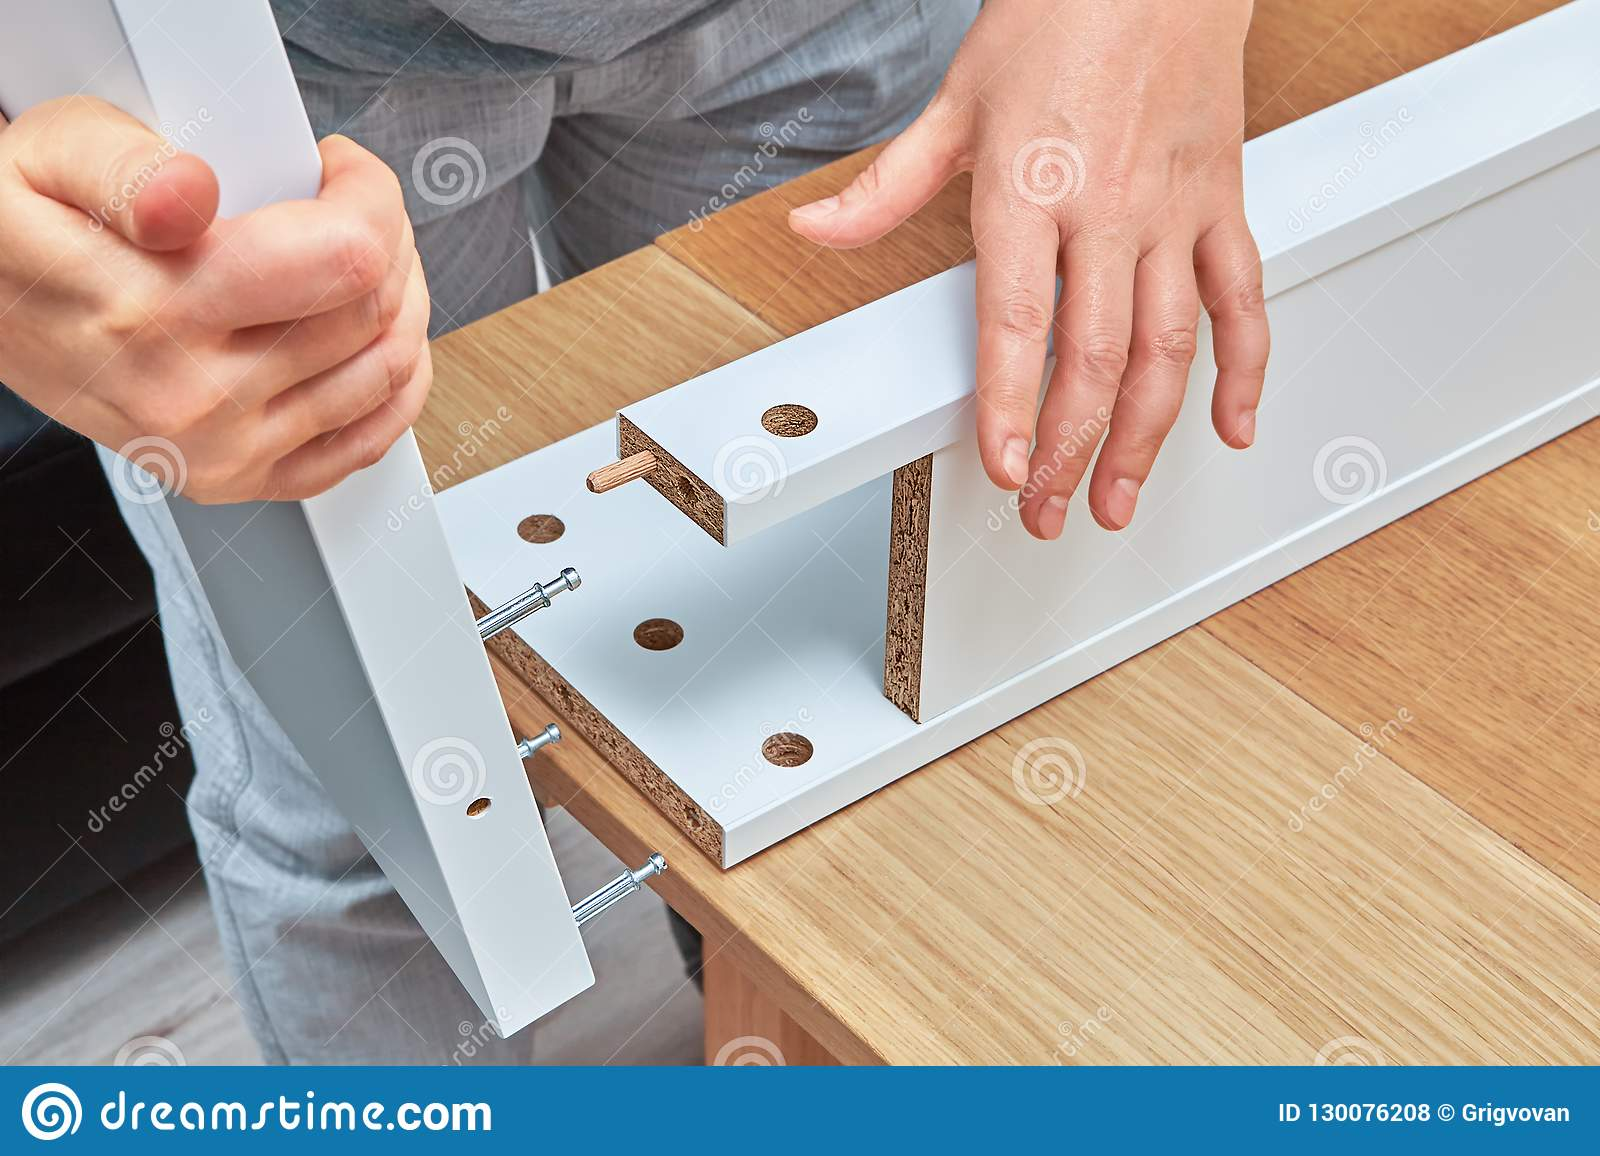 Furniture Assembler Connects Parts Of Table Furniture Assembly